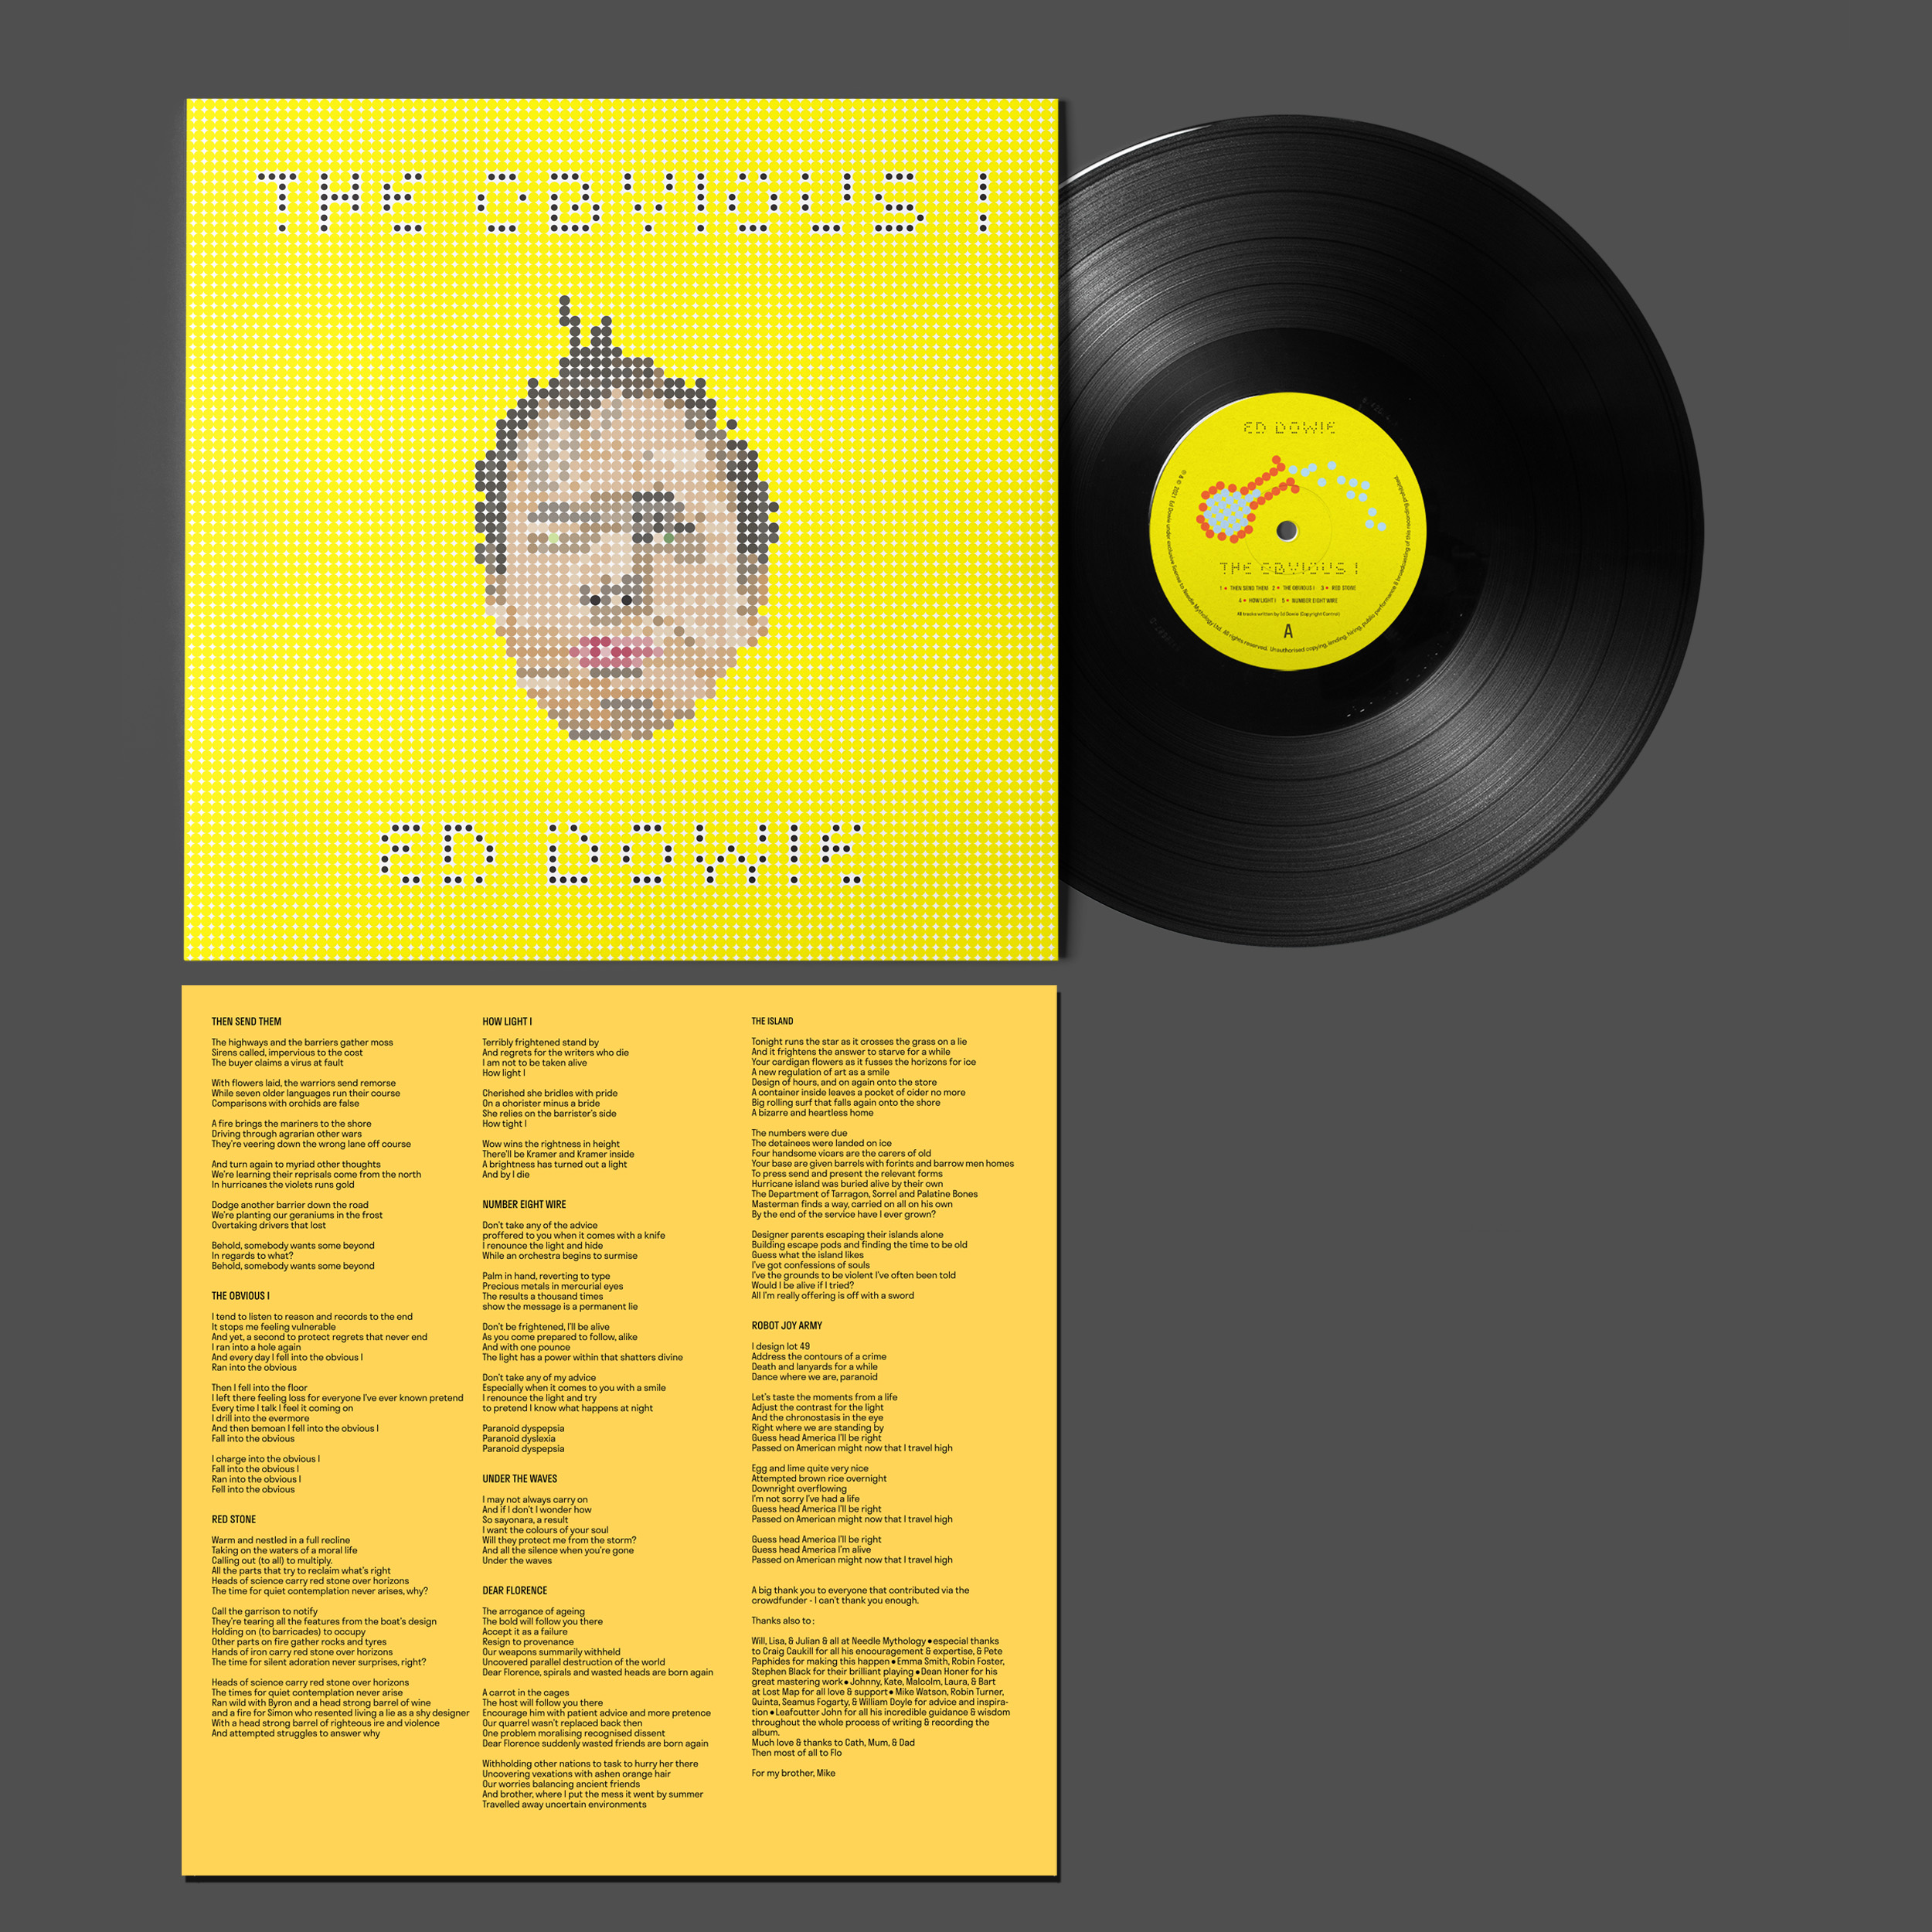 Buy Online Ed Dowie - The Obvious I Heavyweight Black Vinyl + Limited Edition Print